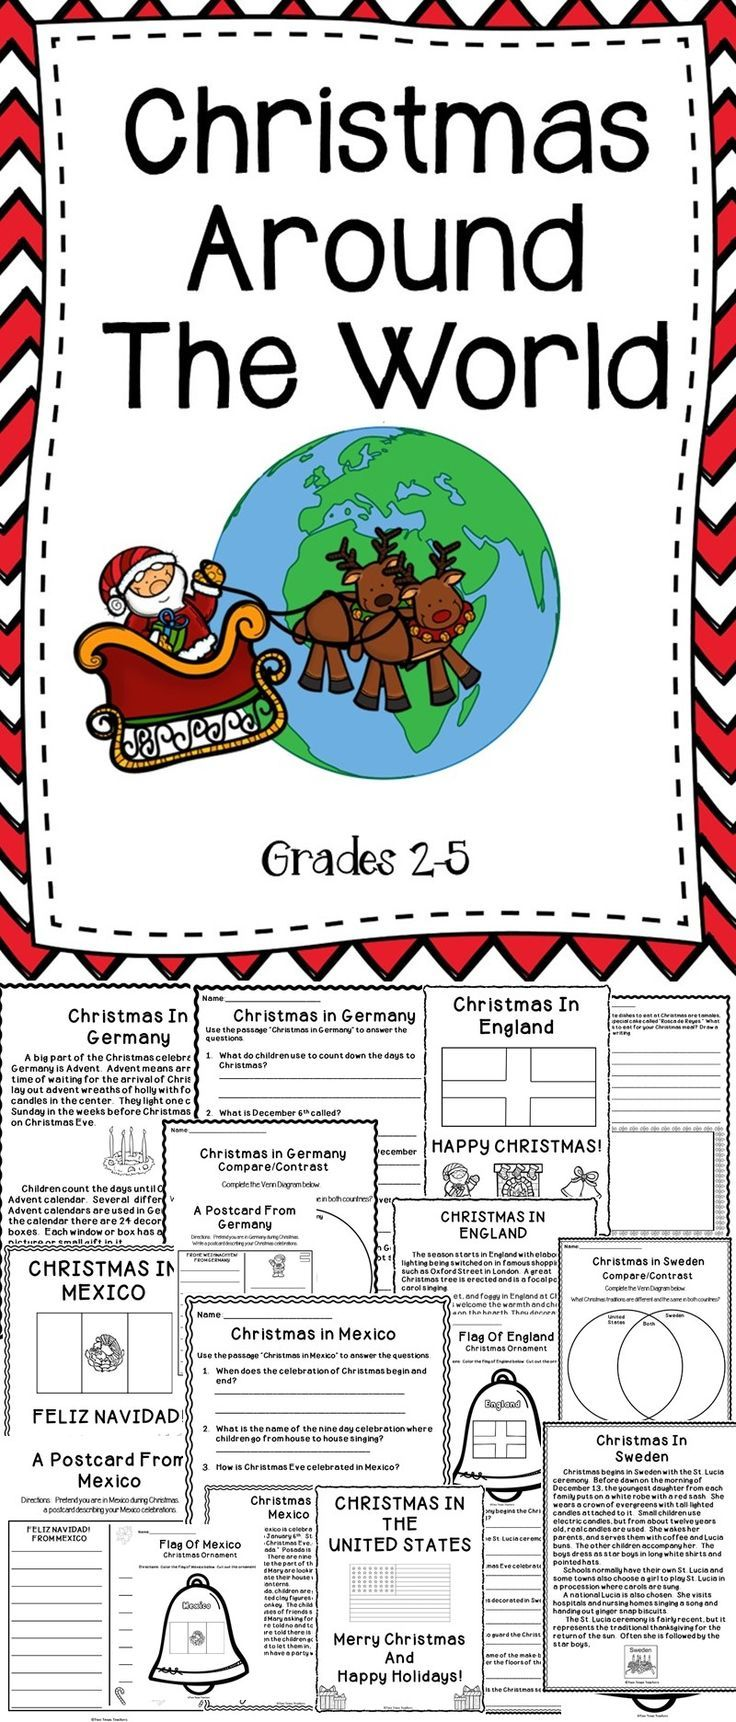 Christmas Around The World - This Christmas Around The World Bundle Includes Educational Activities To Use With Your Students During The Holiday Season.